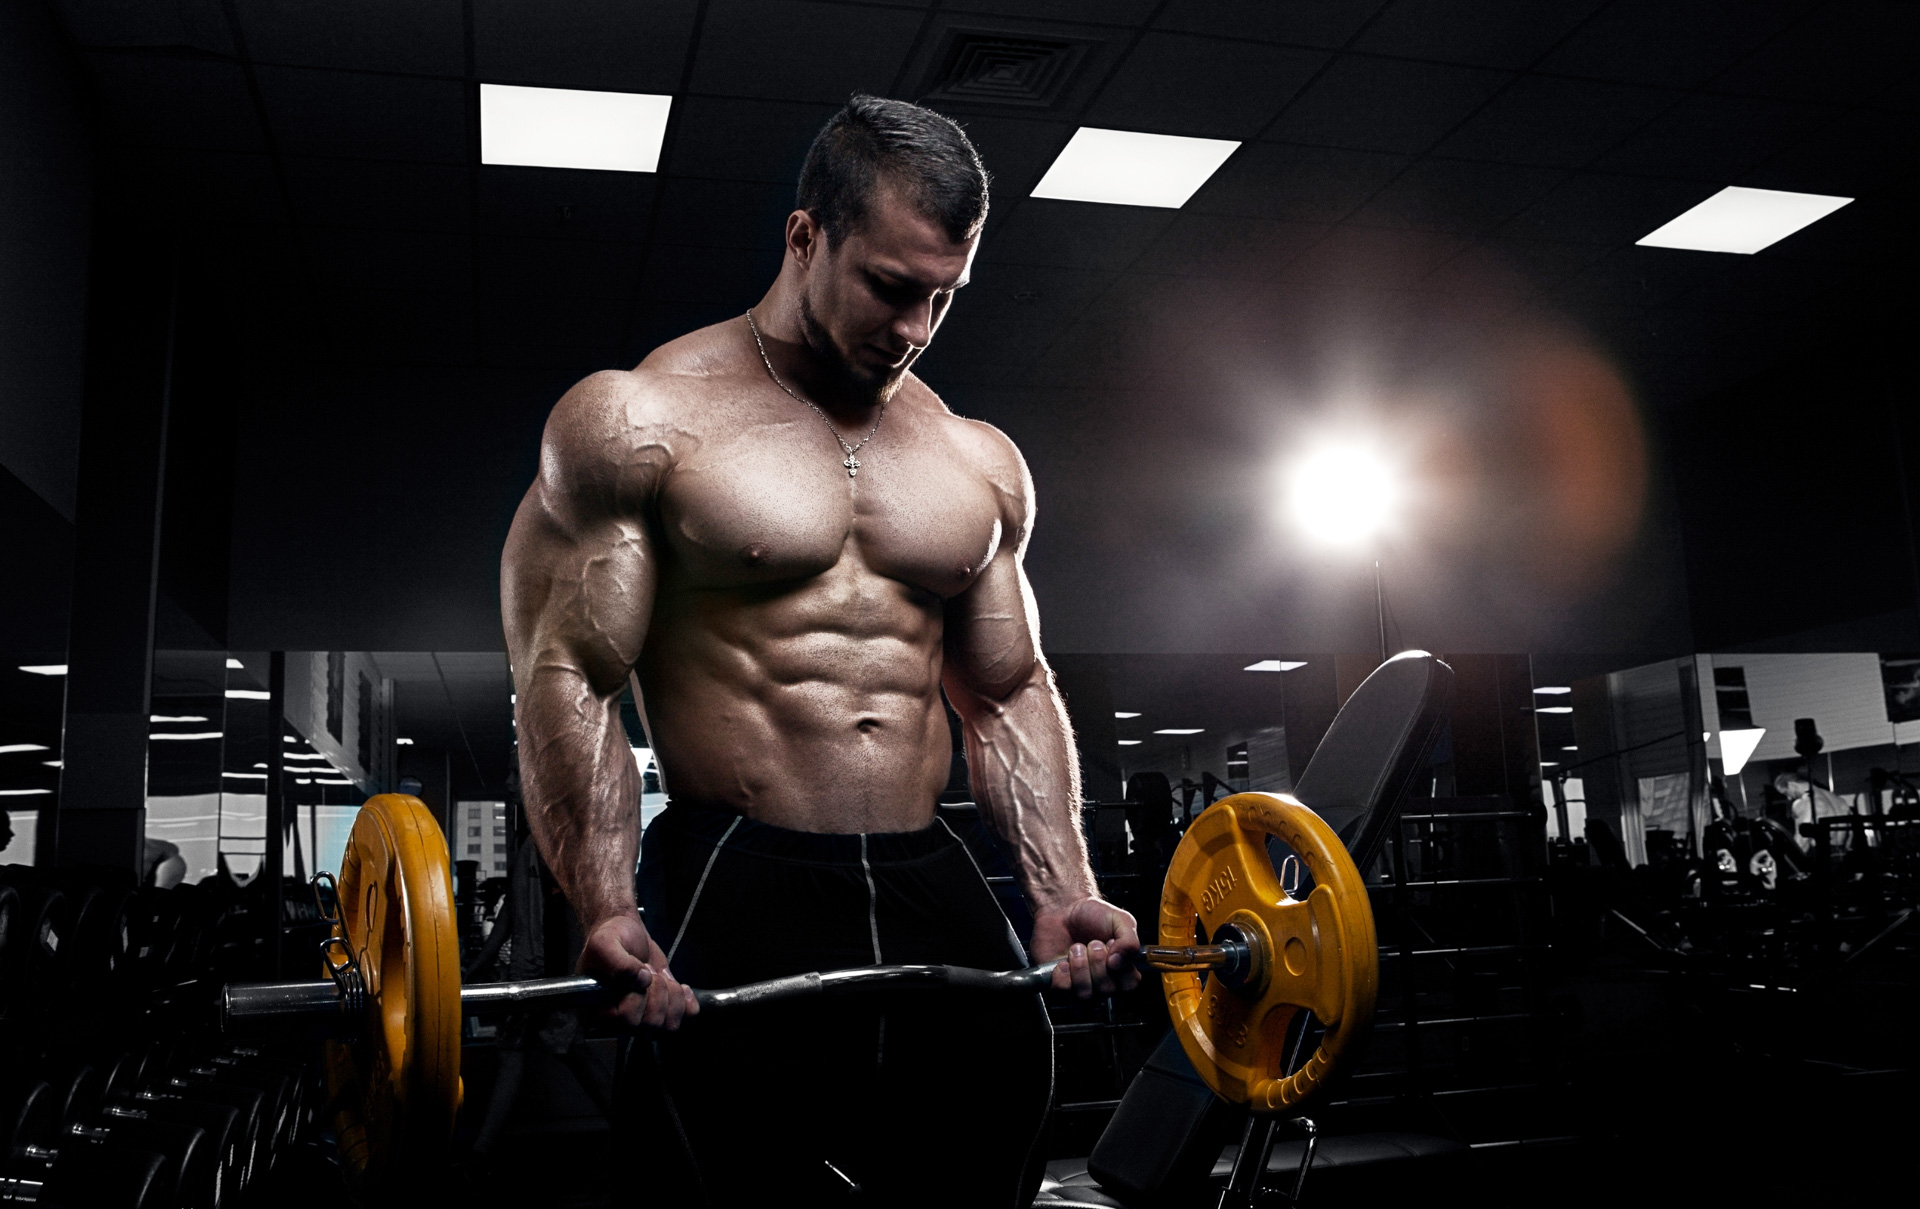 Armoured Vehicles Latin America ⁓ These Best Protein Powder